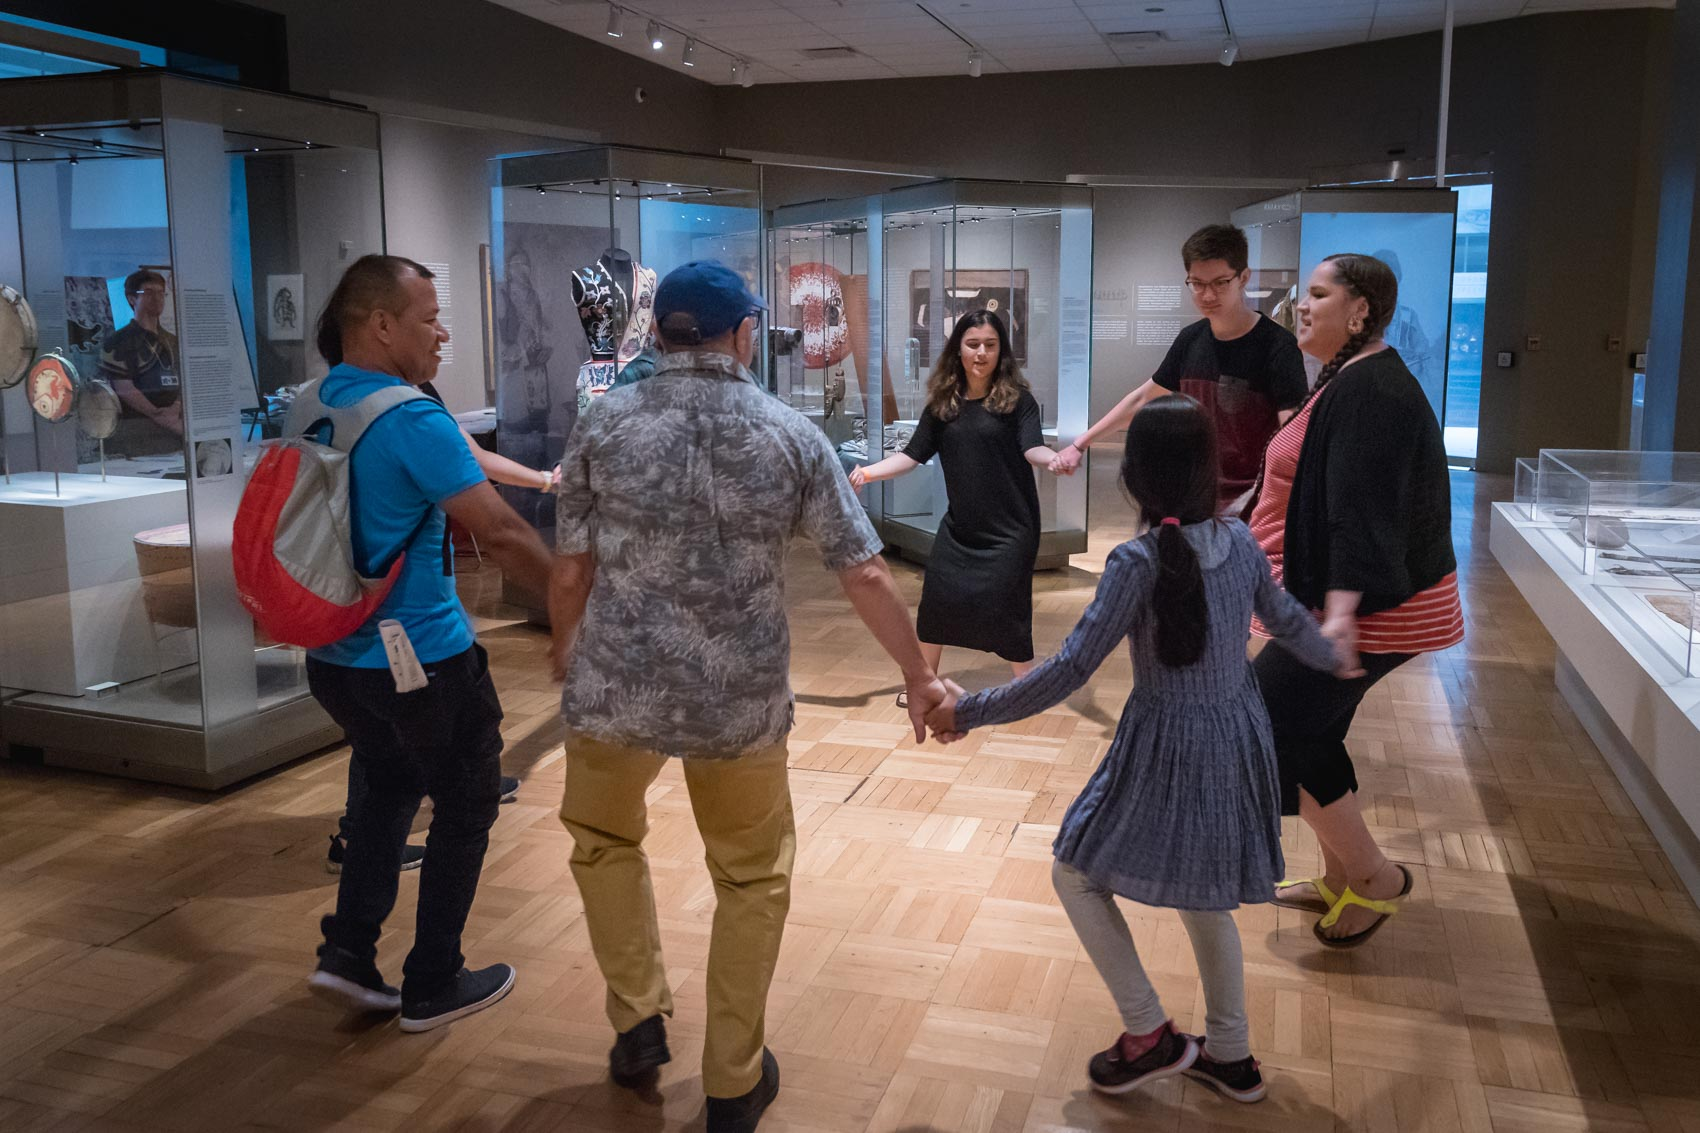 A group of people holding hands in a circle dancing at the Royal Ontario Museum